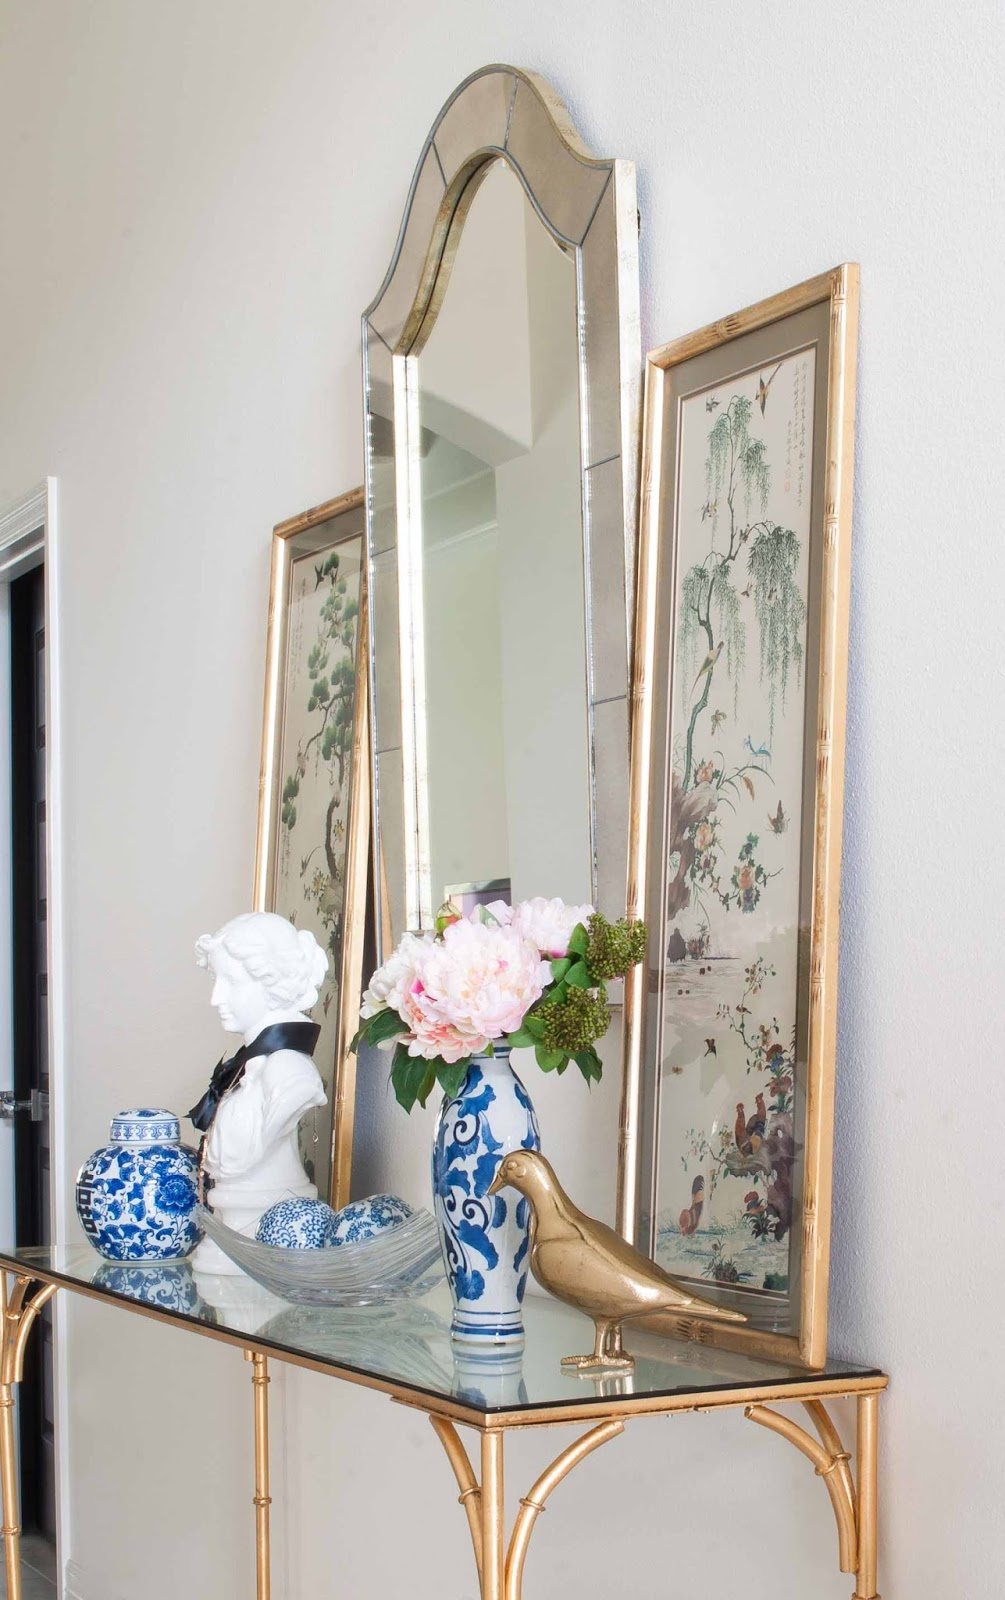 Chinoiserie ginger jars, flowers, vintage art and a gold bamboo console table in a foyer.